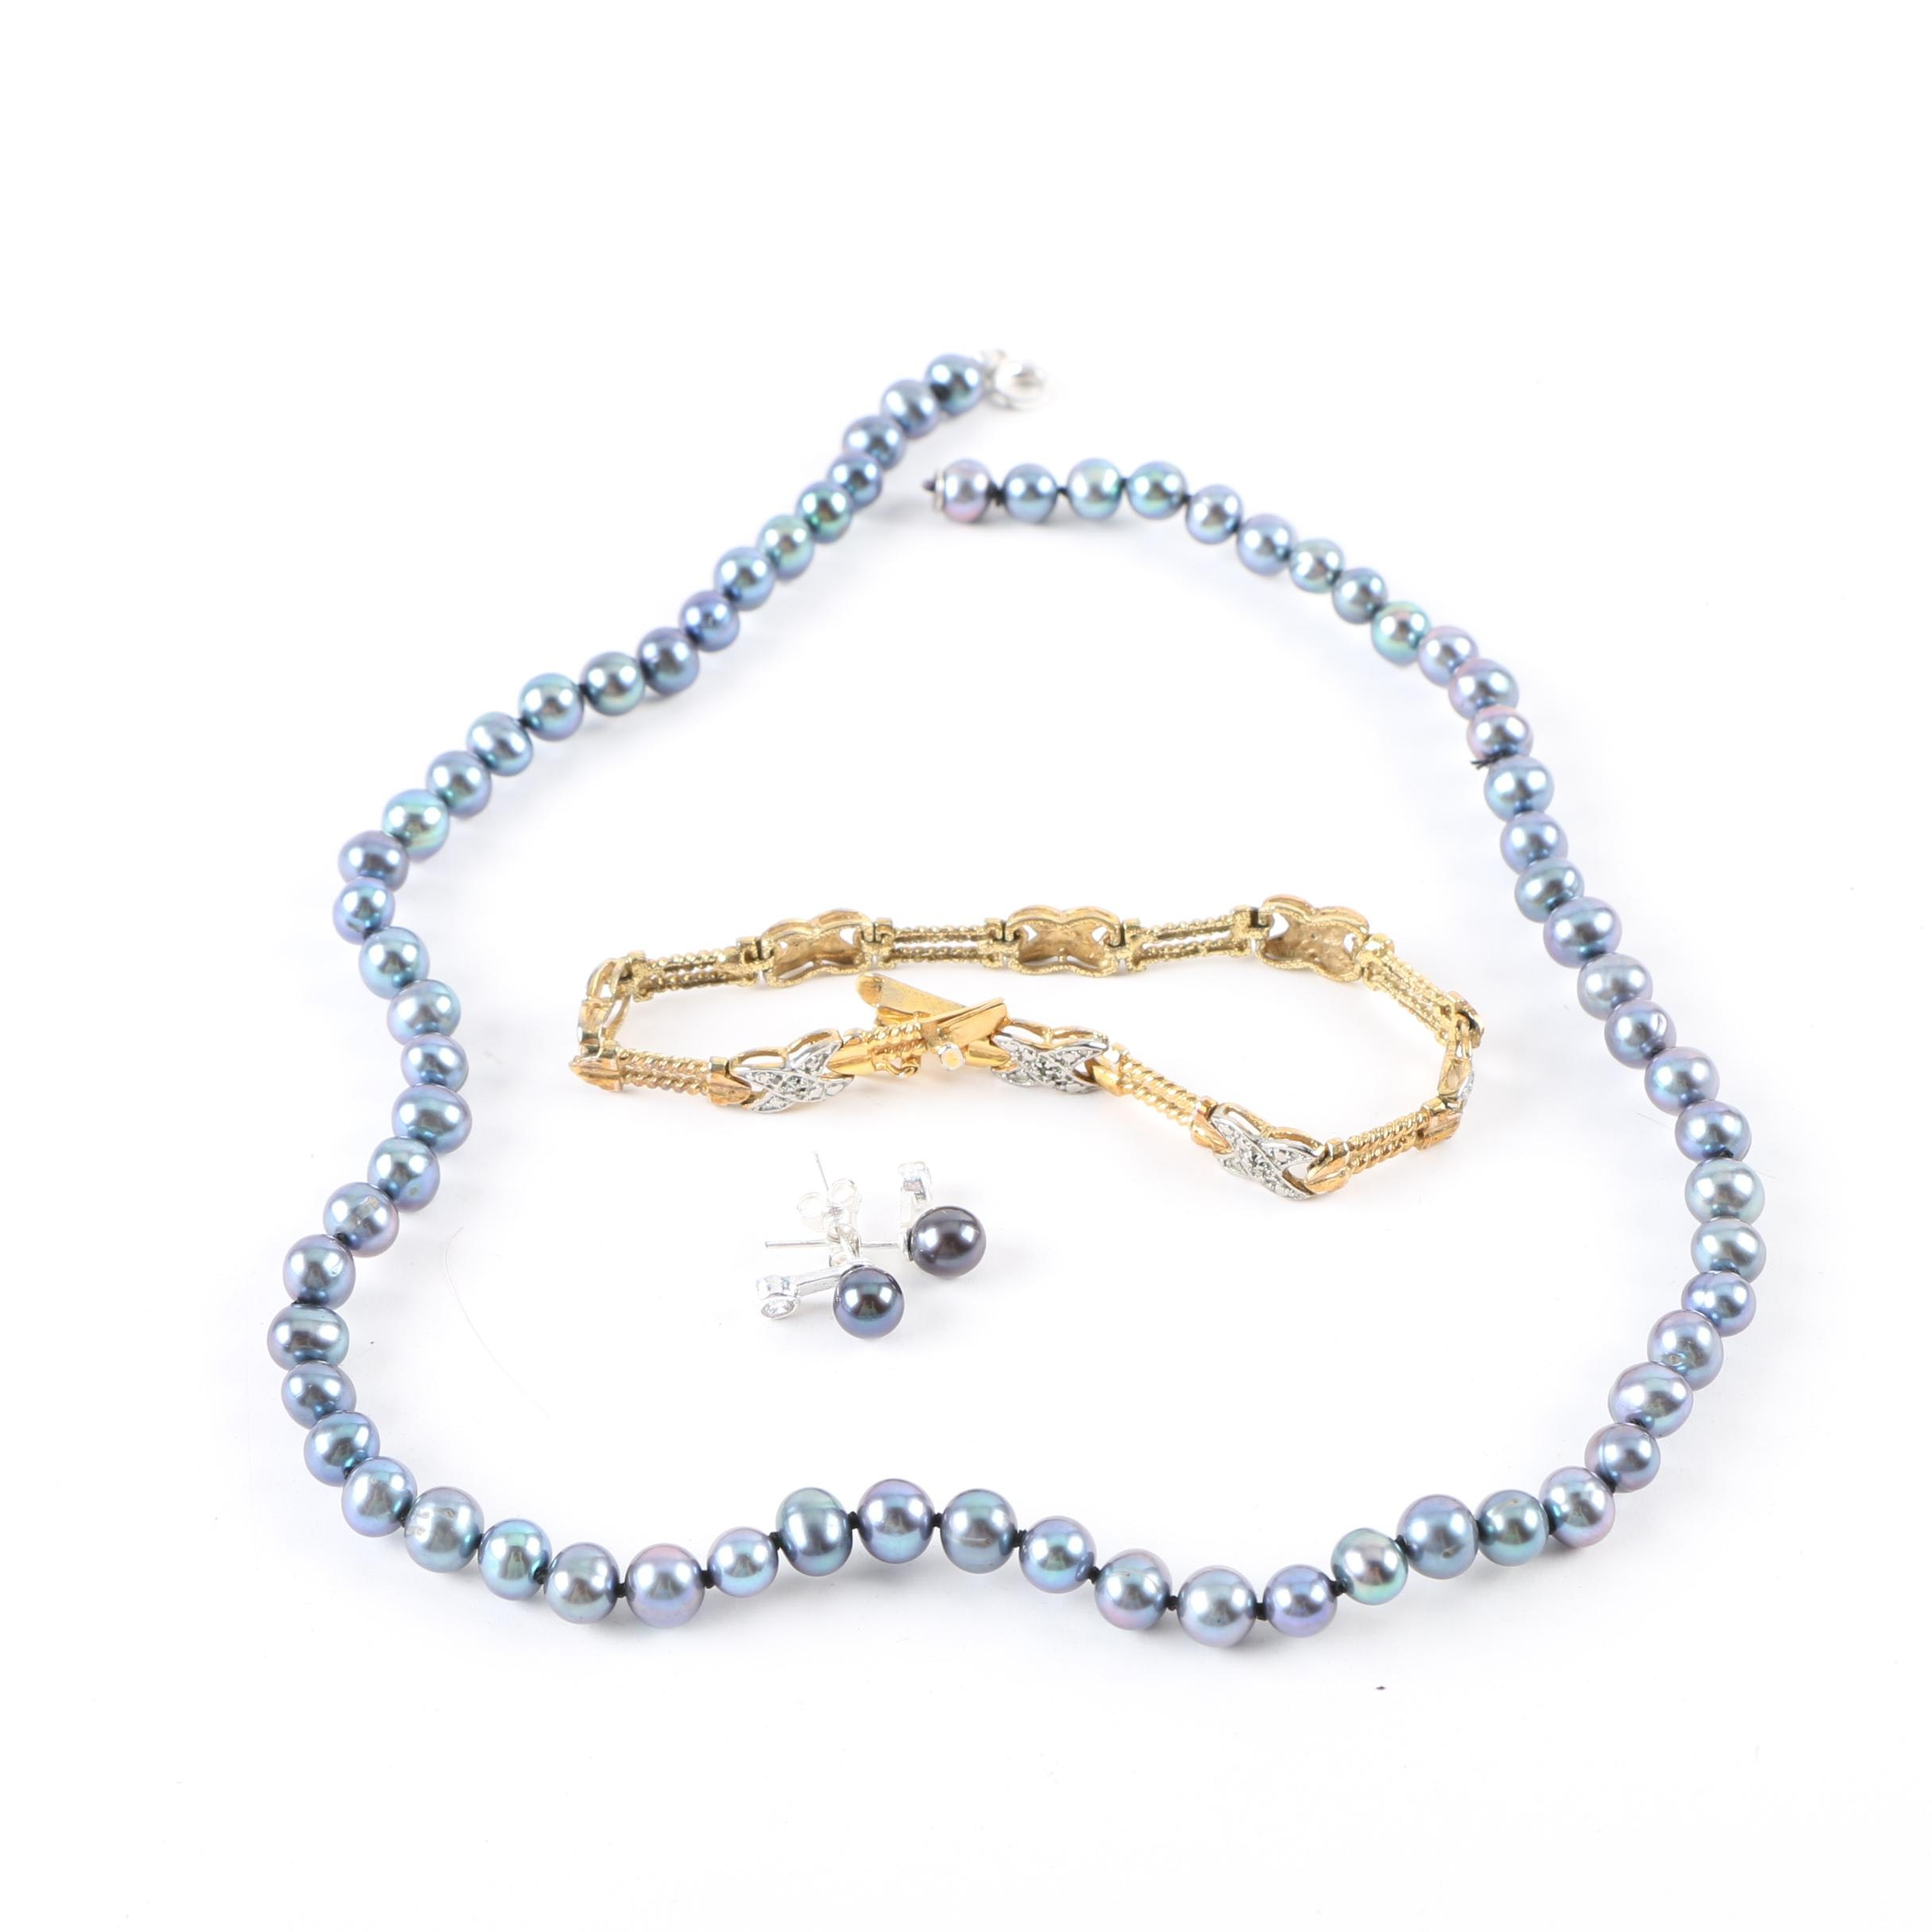 Sterling Silver Jewelry Including Cultured Pearls and Diamonds